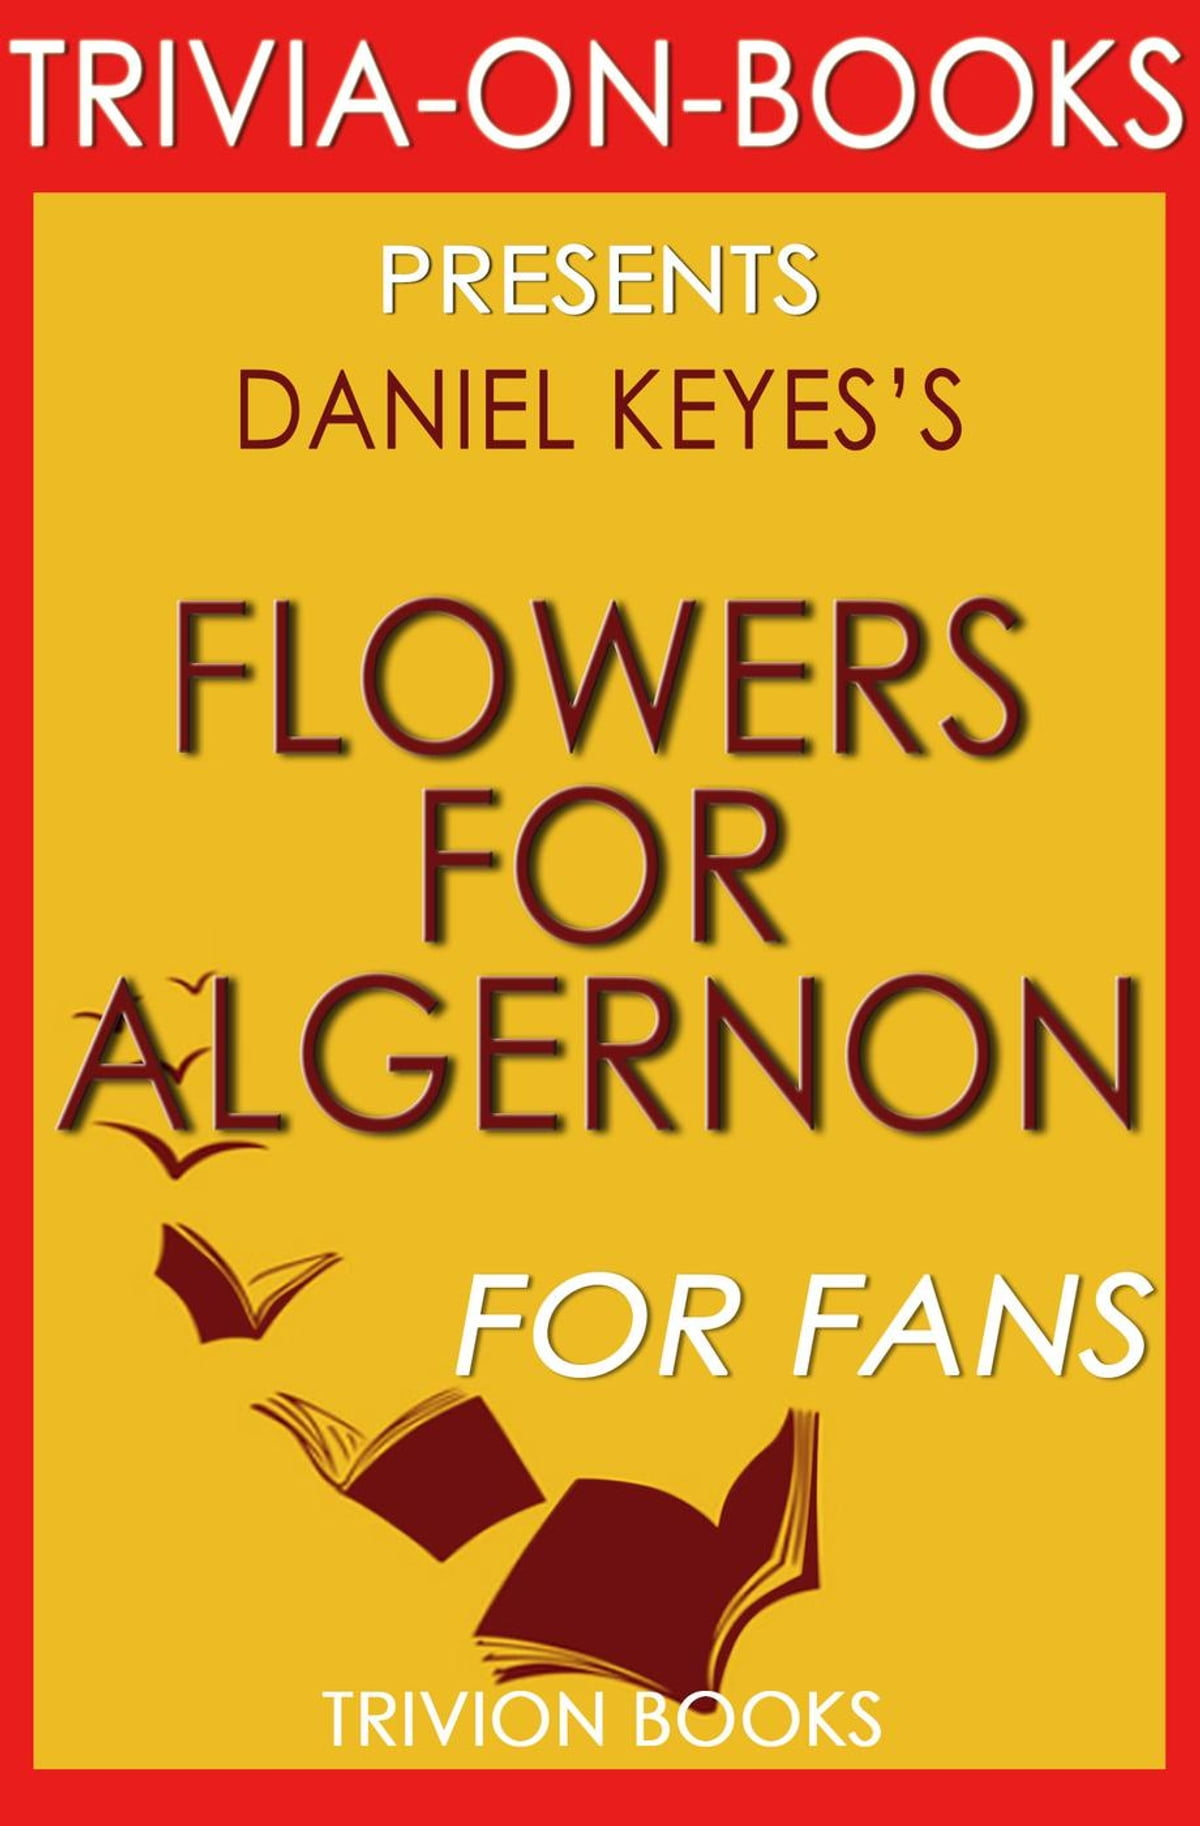 an analysis of conformity in society in flowers of algernon by daniel keyes Comparison between daniel keyes' flowers for algernon and awakenings there were many similarities between the short story flowers for charly the book flowers for algernon, by daniel keys was written in 1961 later, richard heynes decided to produce the movie in 1968.